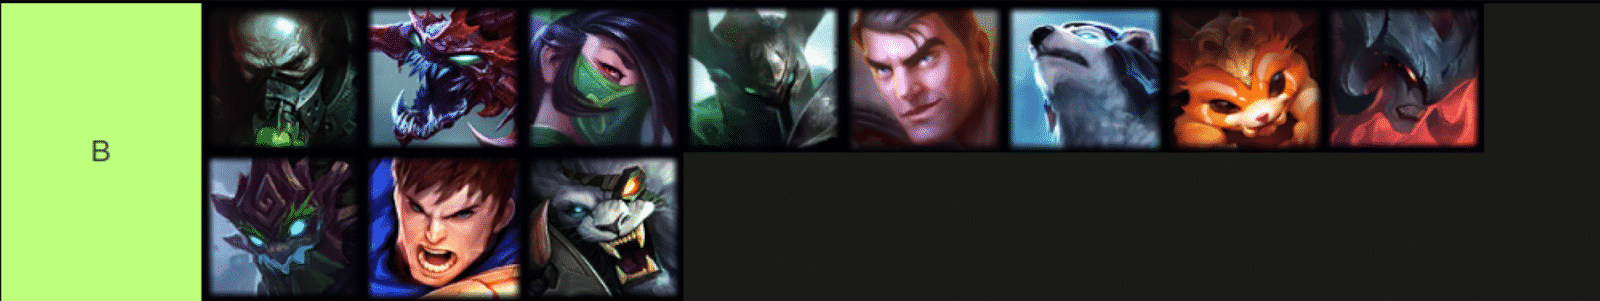 A B Tier for League of Legends champions with the faces of Urgot, Cho'gath, Akali, Mordekaiser, Jayce, Volibear, Gnar, Aatrox, Maokai, Garen and Rengar